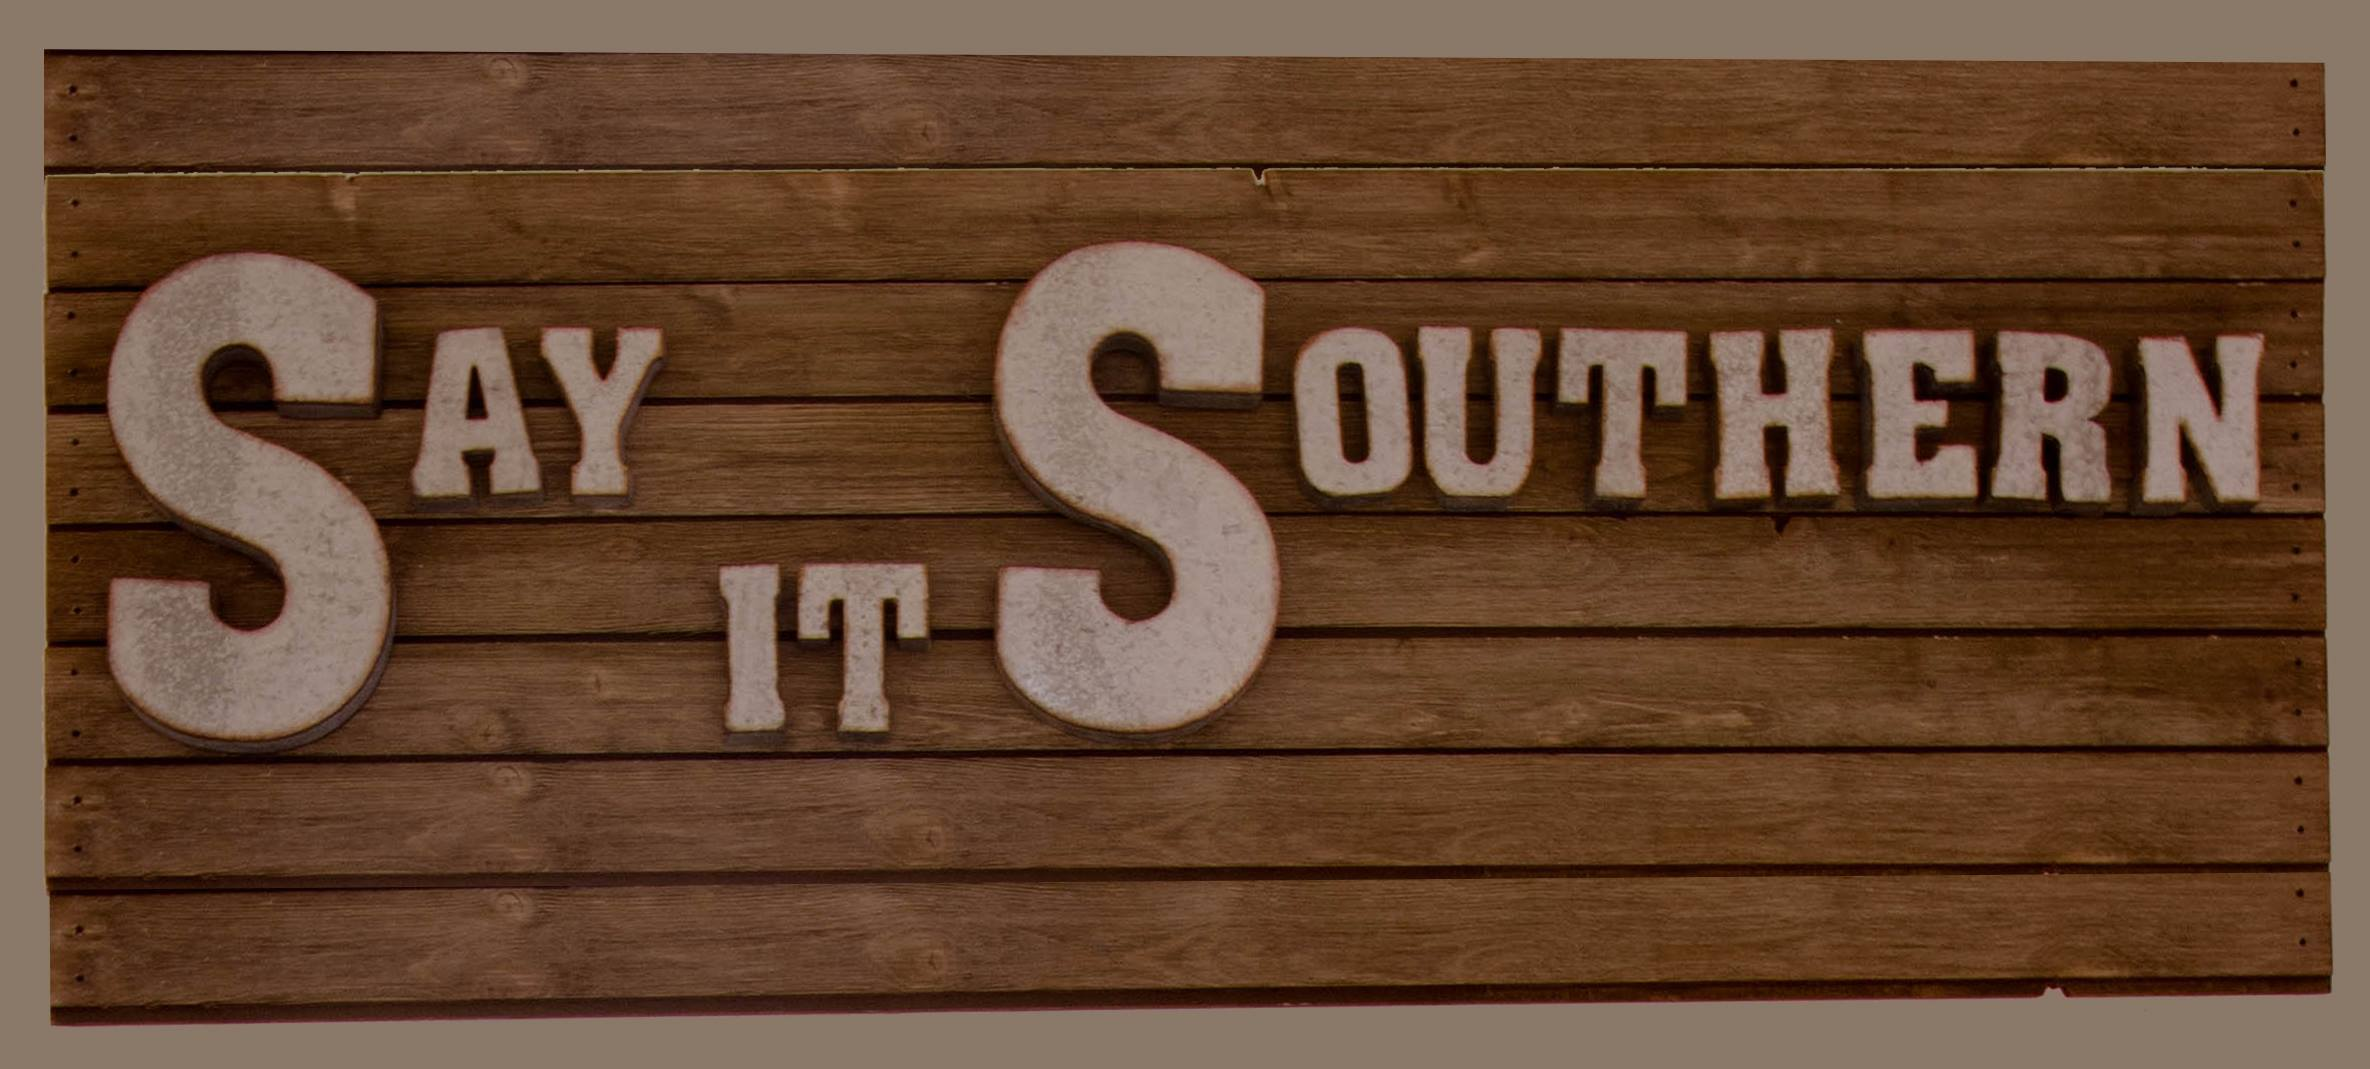 Say It Southern